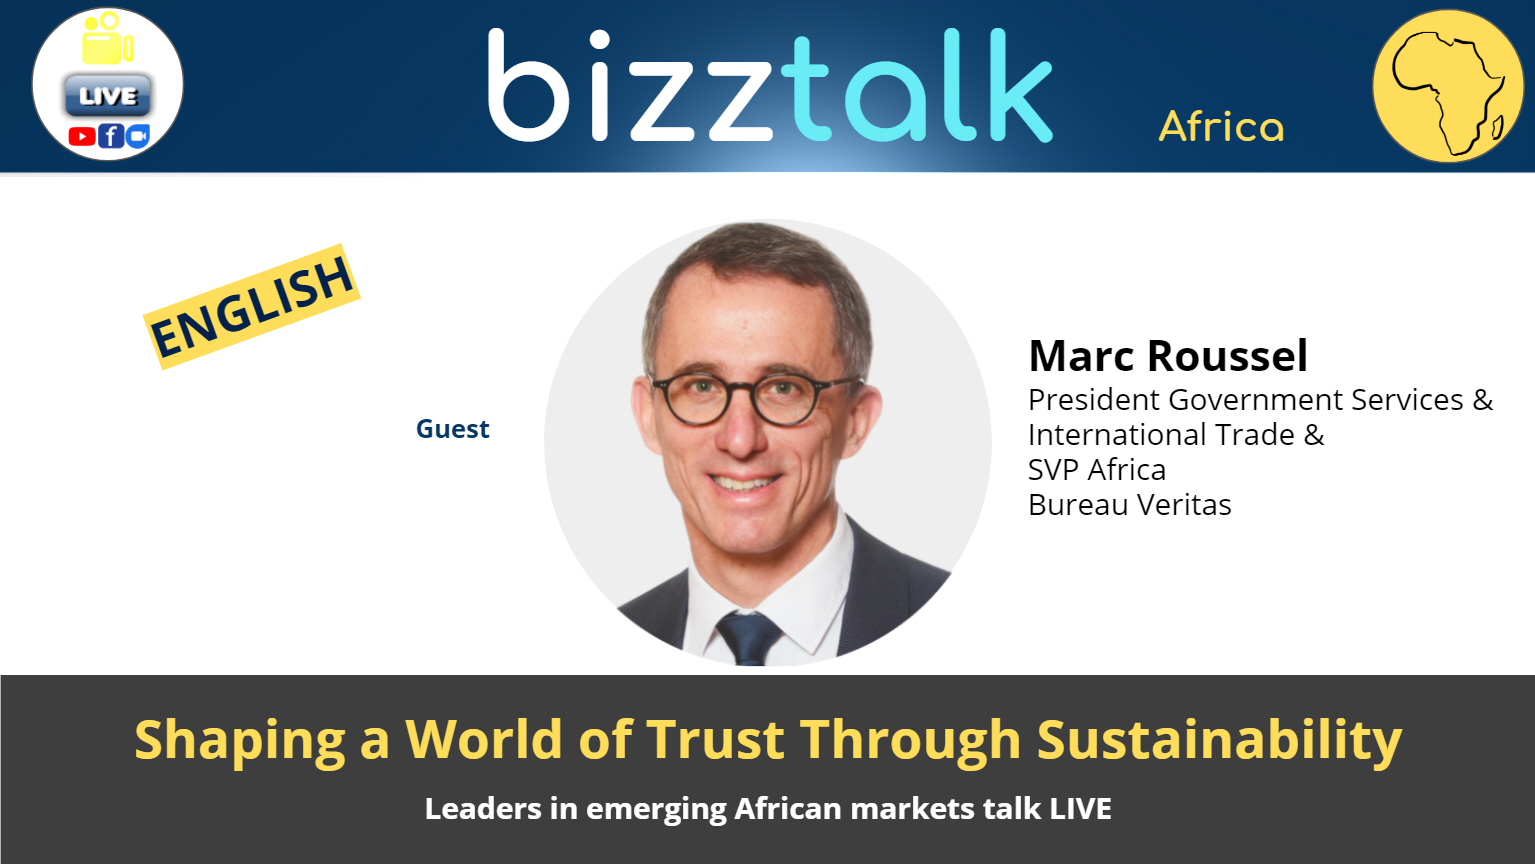 Shaping a World of Trust Through Sustainability